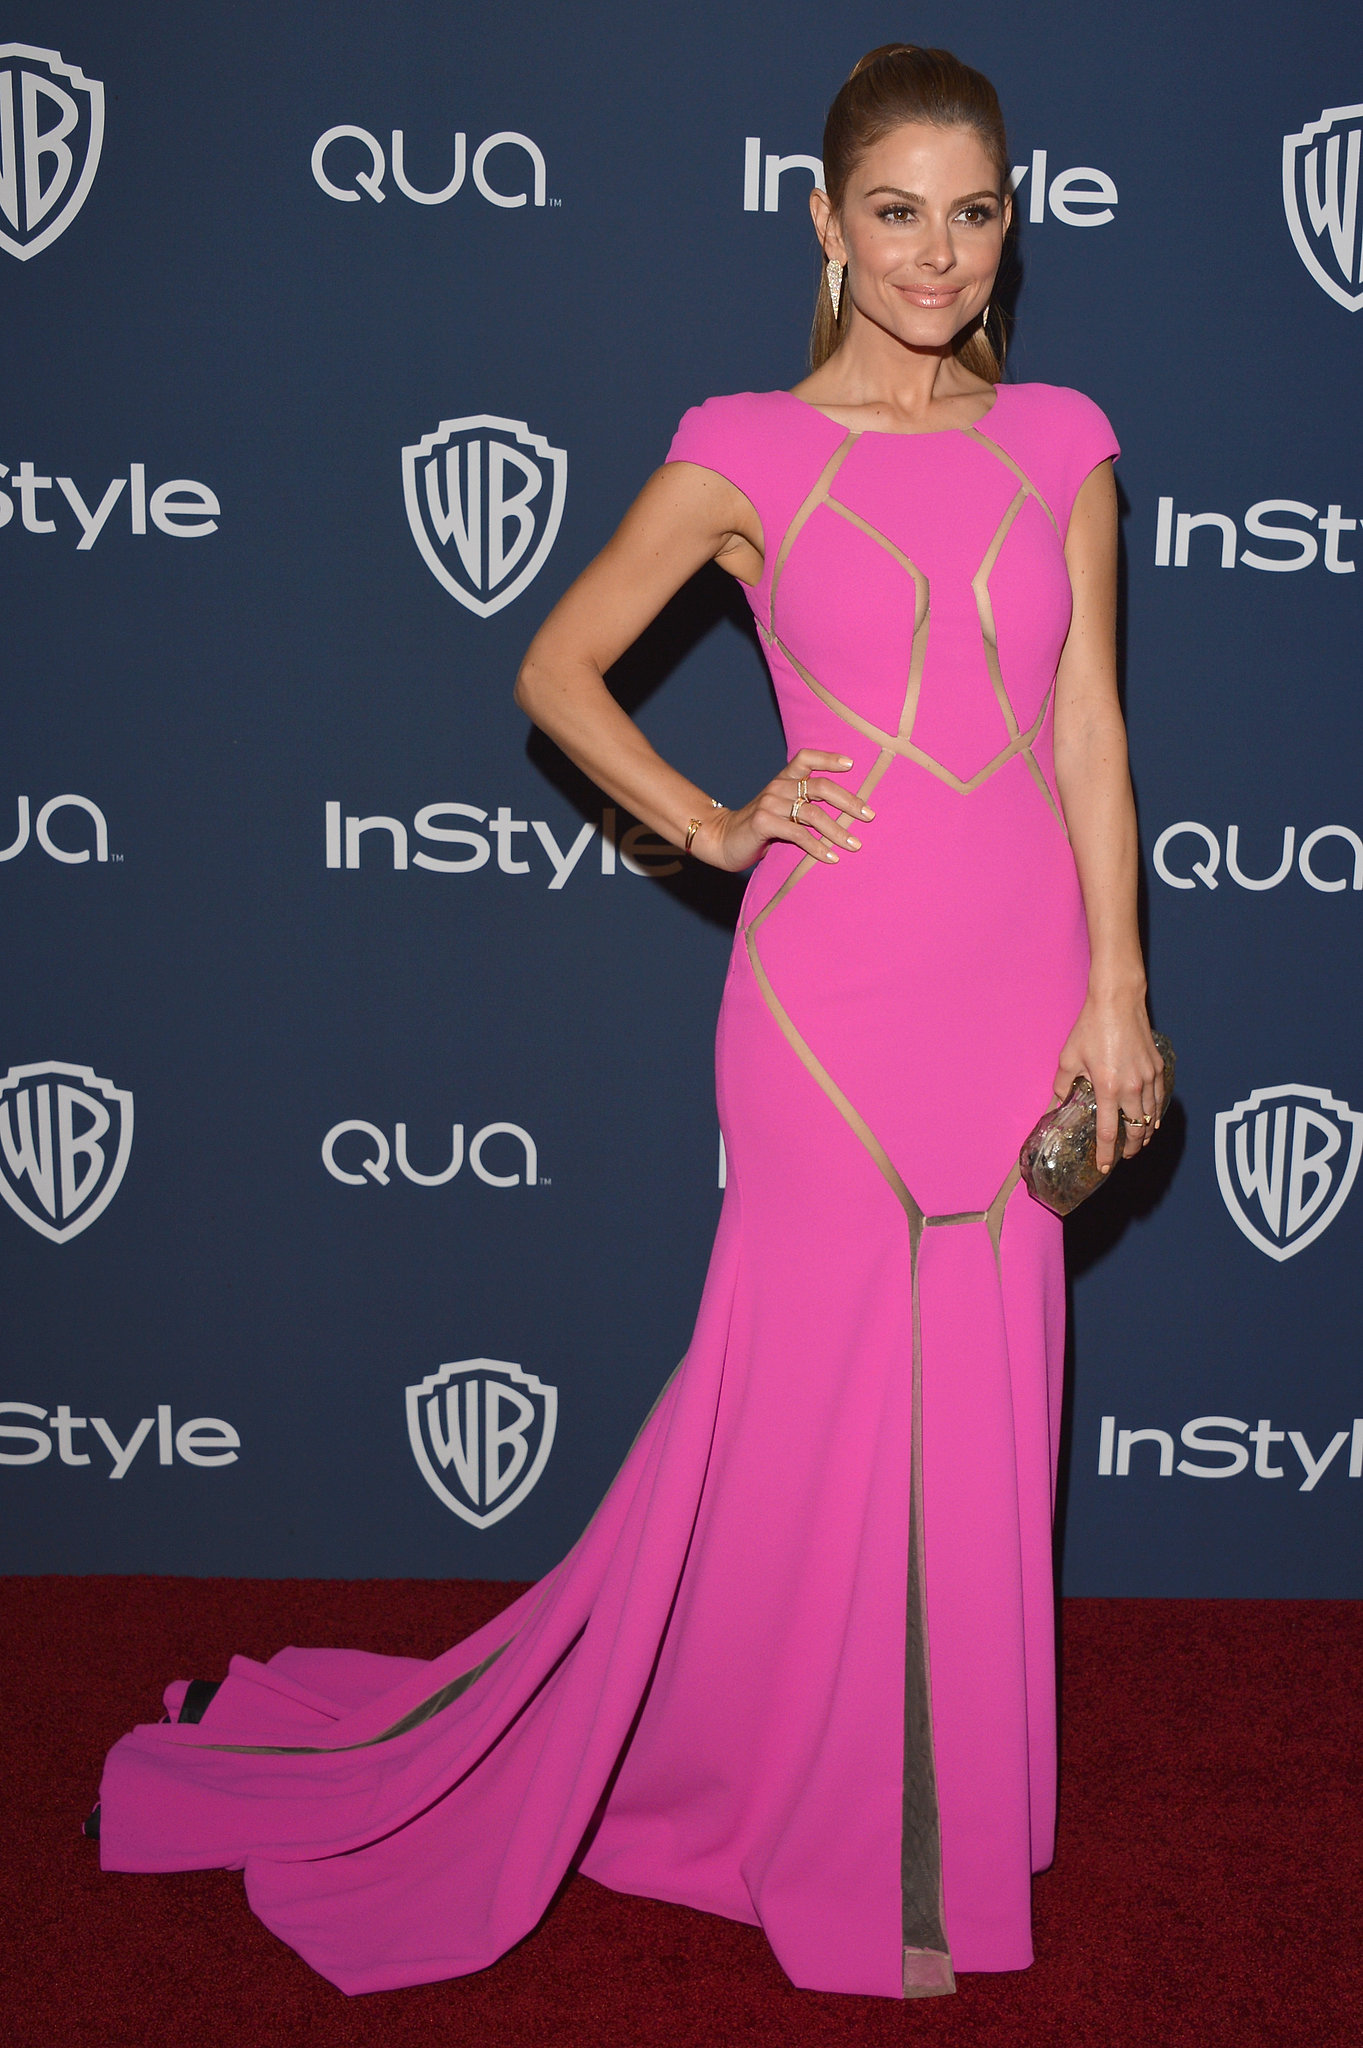 Maria Menounos went with a bright pink gown.